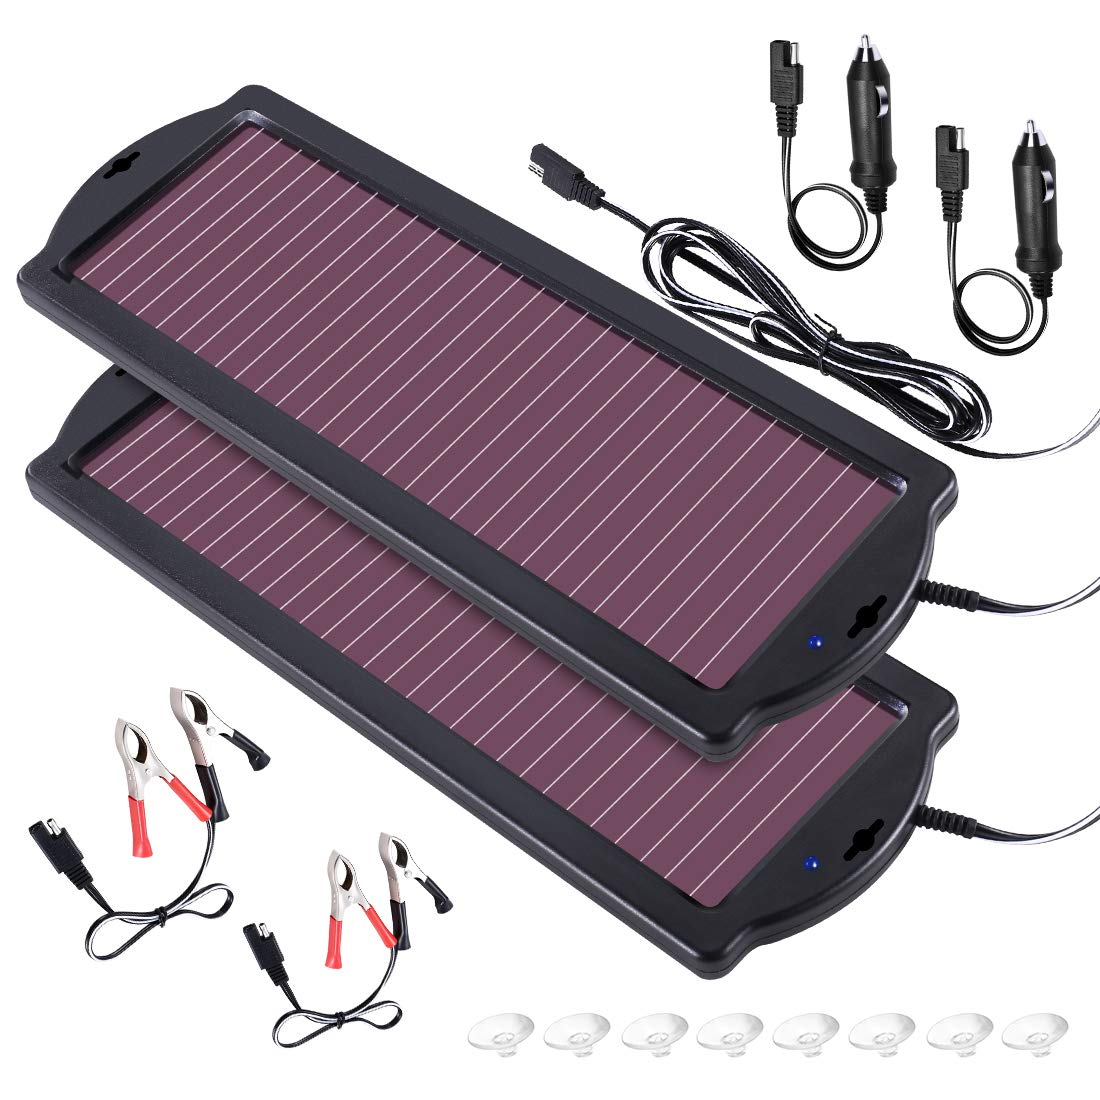 POWOXI Solar Car Battery Trickle Charger, 12V 1.8W Solar Battery Charger Car, Waterproof Portable Amorphous Solar Panel for Rv Motorcycle Watercraft by POWOXI (Image #1)